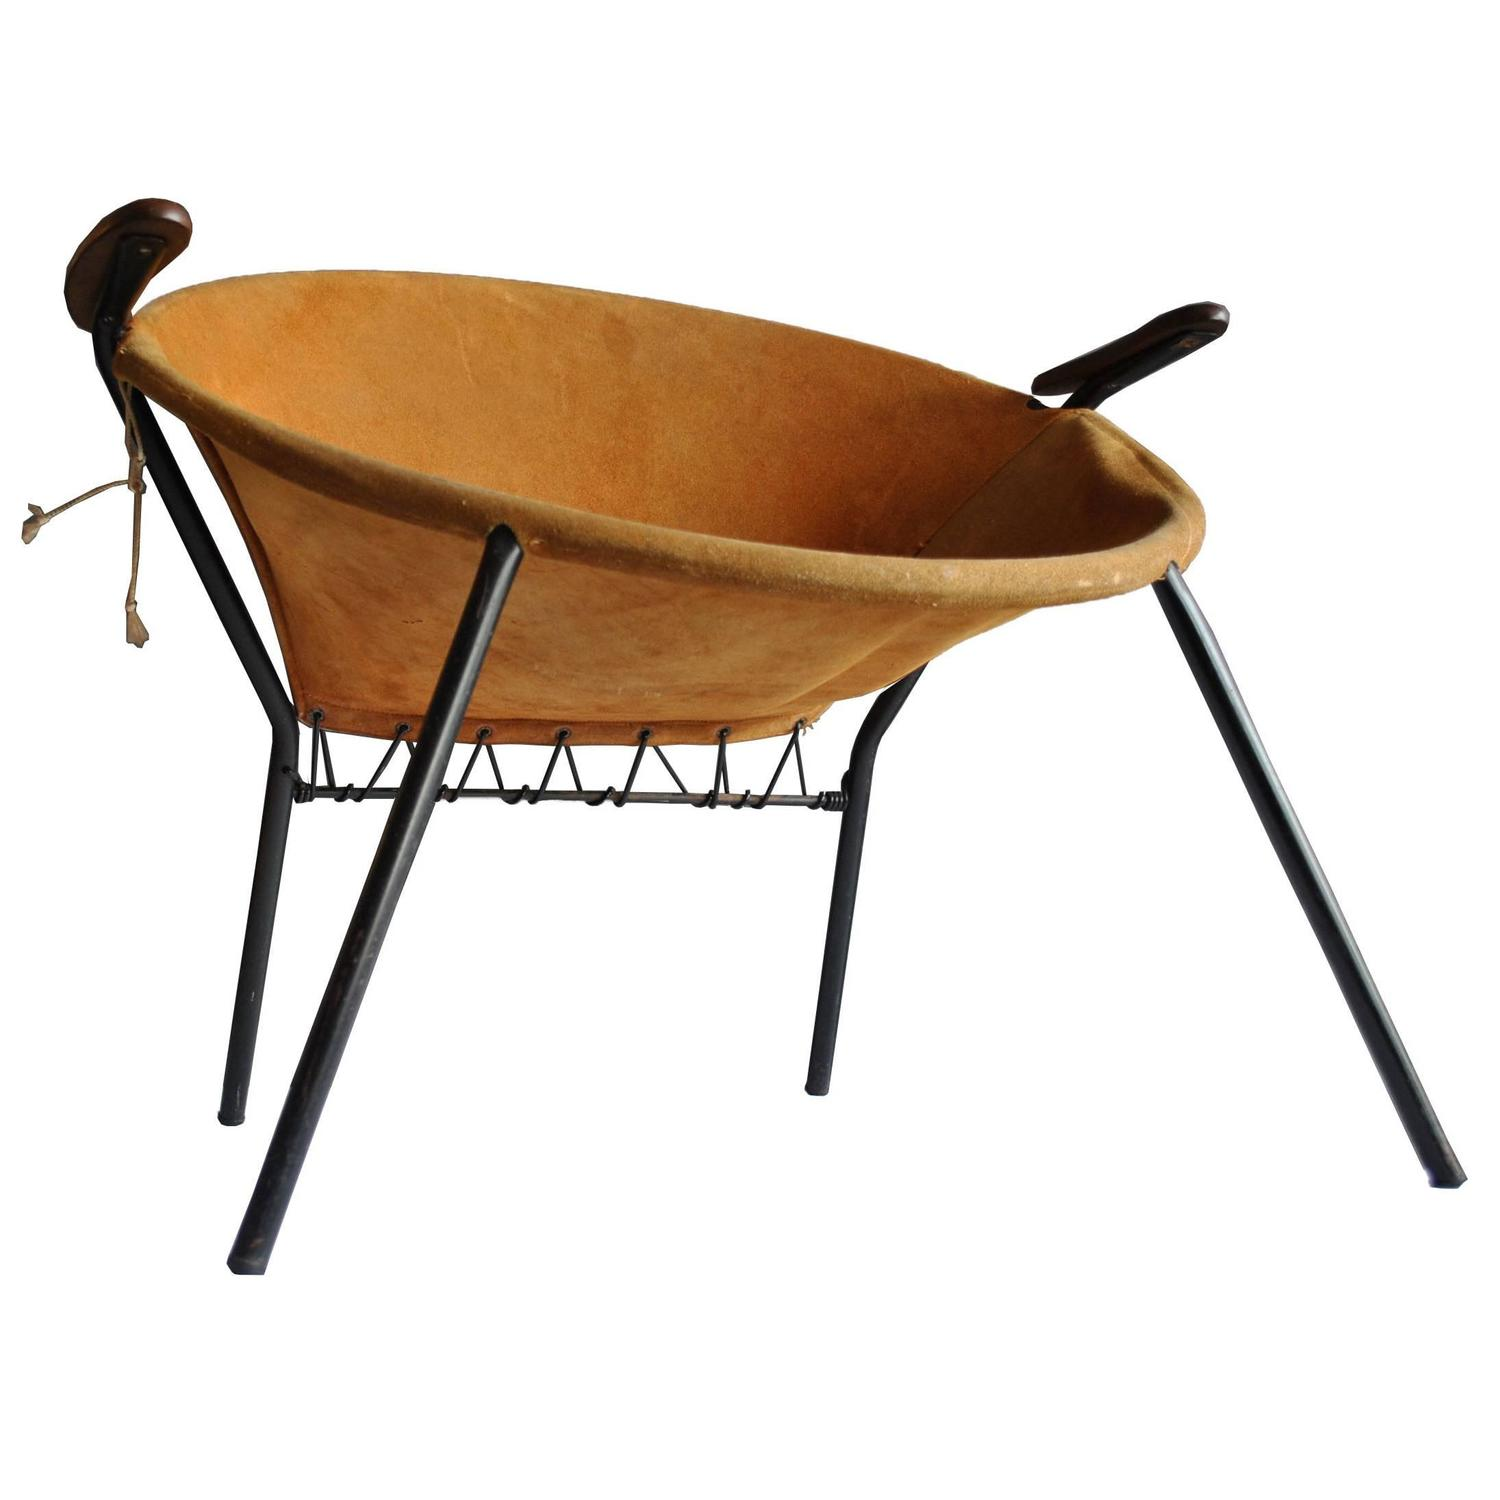 Attractive Hans Olsen, Balloon   Hoop Chair For Sale At 1stdibs